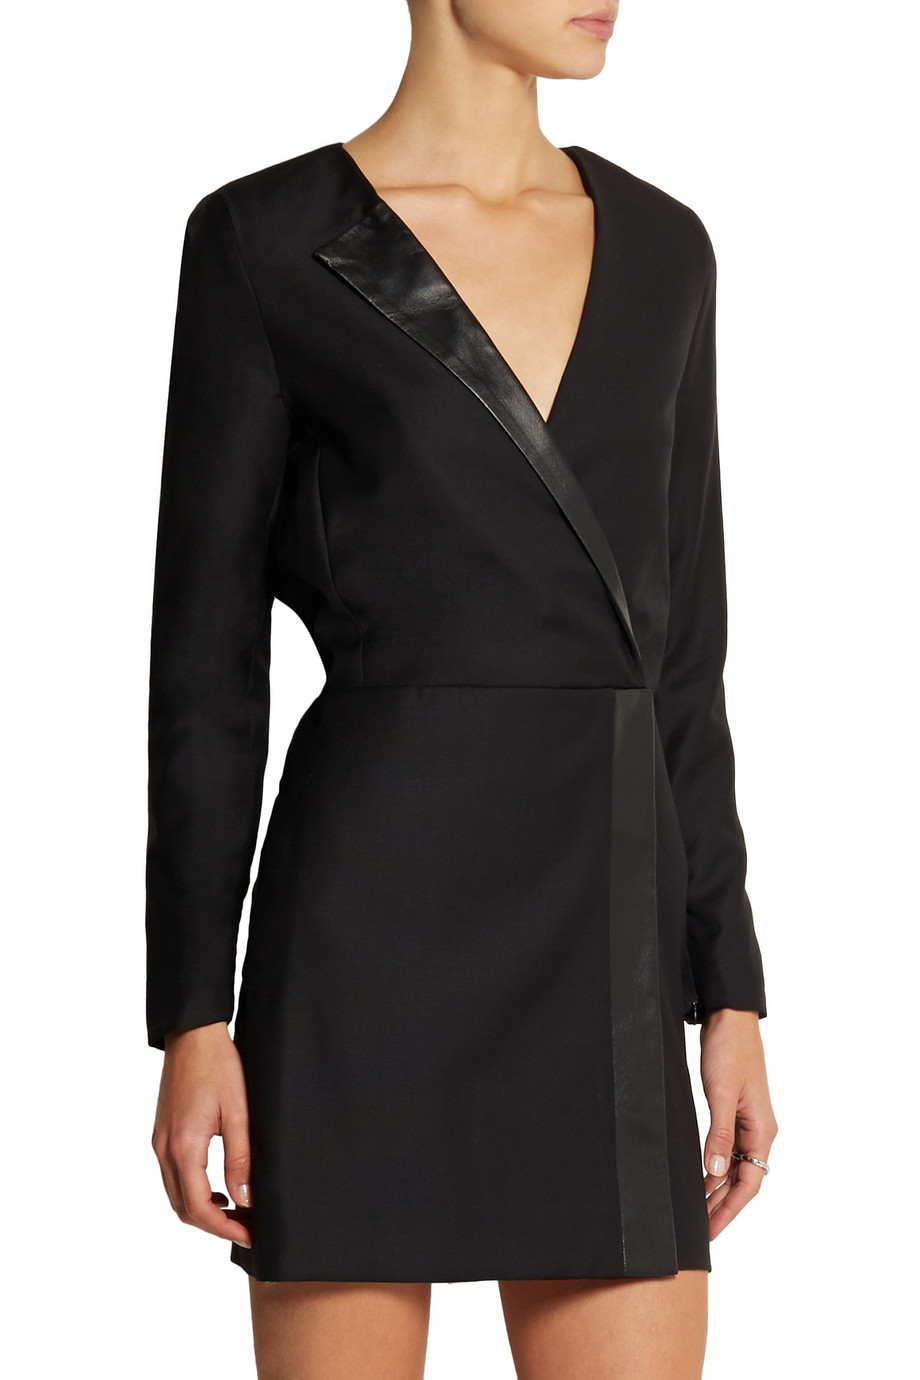 Karl Lagerfeld Emilia Wool Dress $198